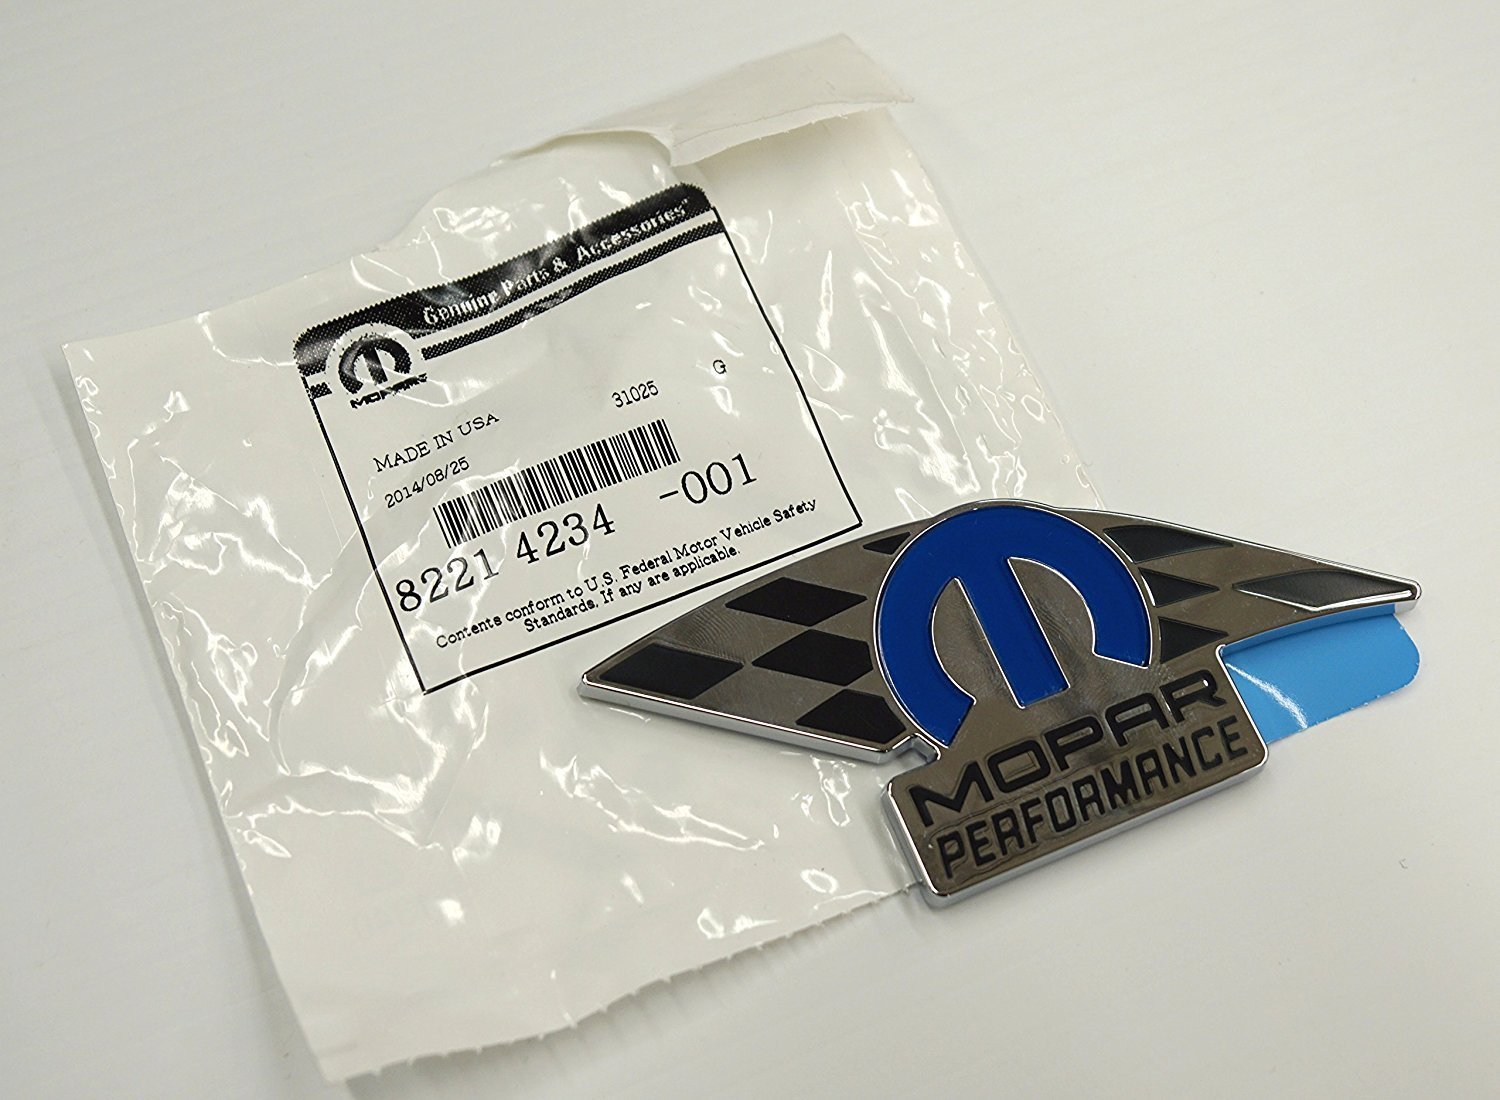 82214234 Mopar Chrome Plated Performance Badge